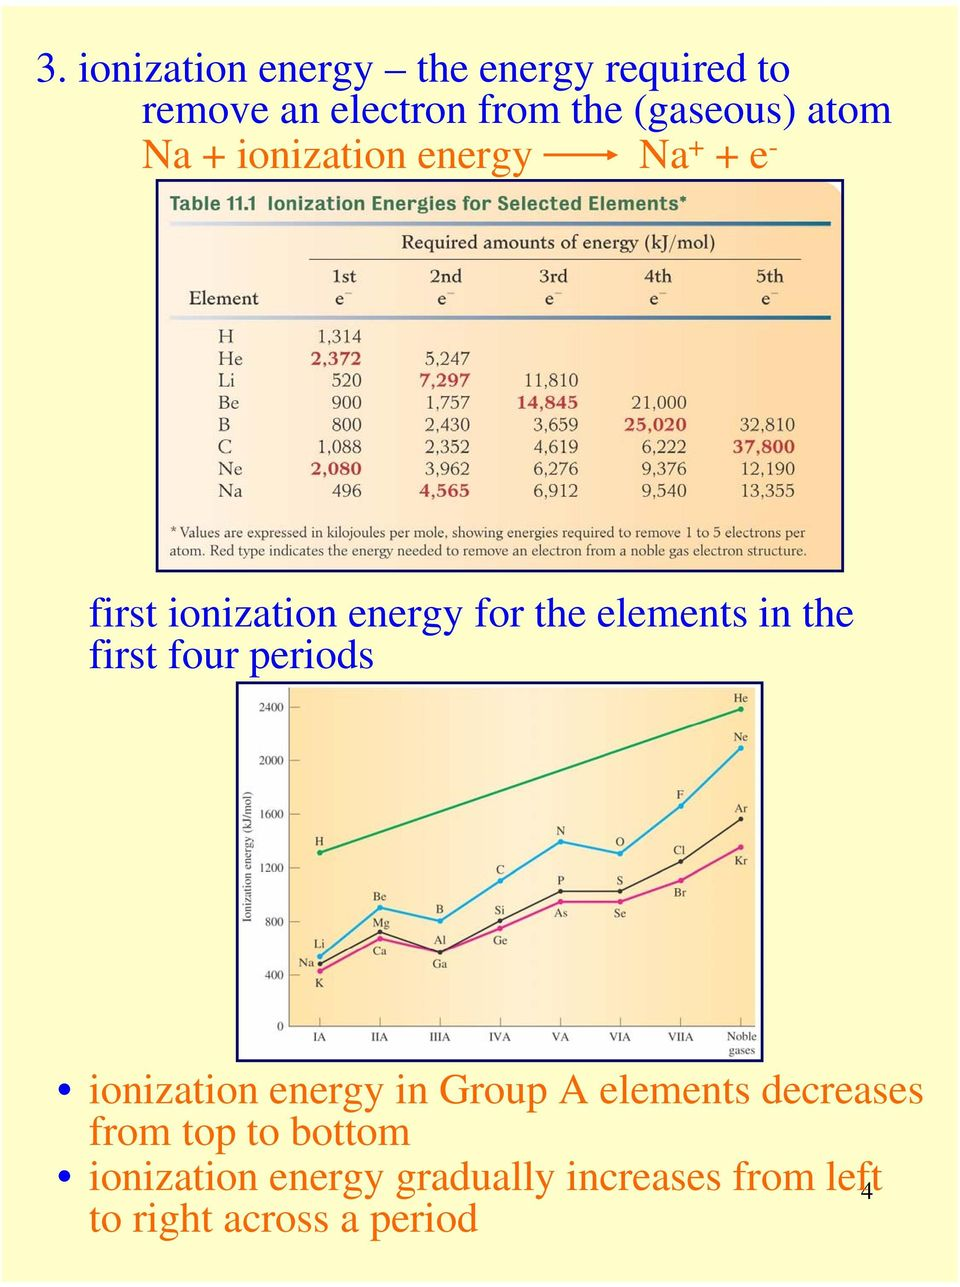 the first four periods ionization energy in Group A elements decreases from top to